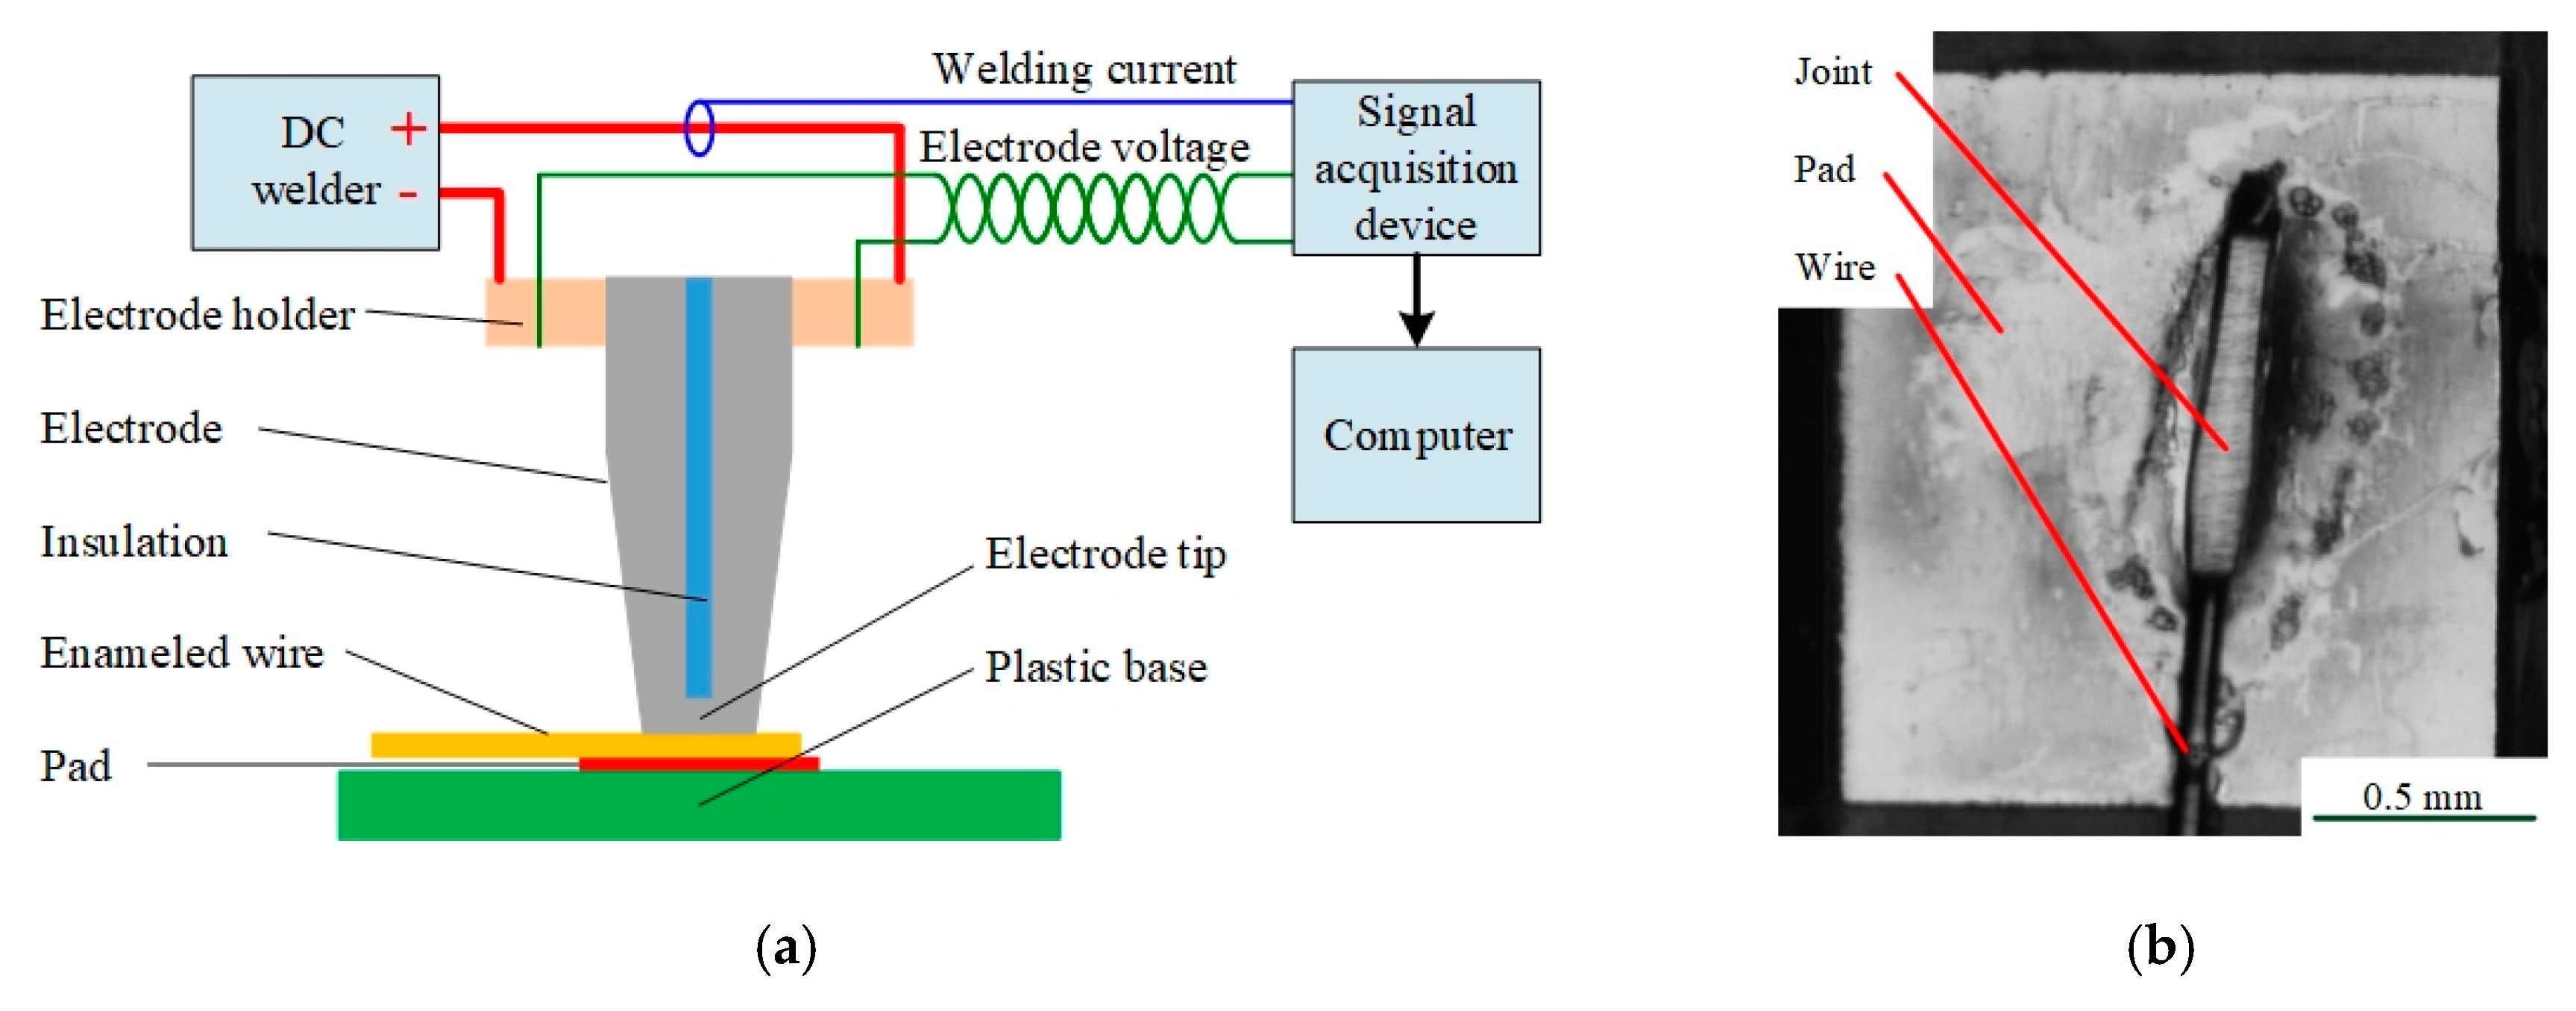 Applied Sciences | Free Full-Text | Quality Monitoring for Micro Resistance  Spot Welding with Class-Imbalanced Data Based on Anomaly Detection | HTML | Spot Welding Schematic Diagram |  | MDPI